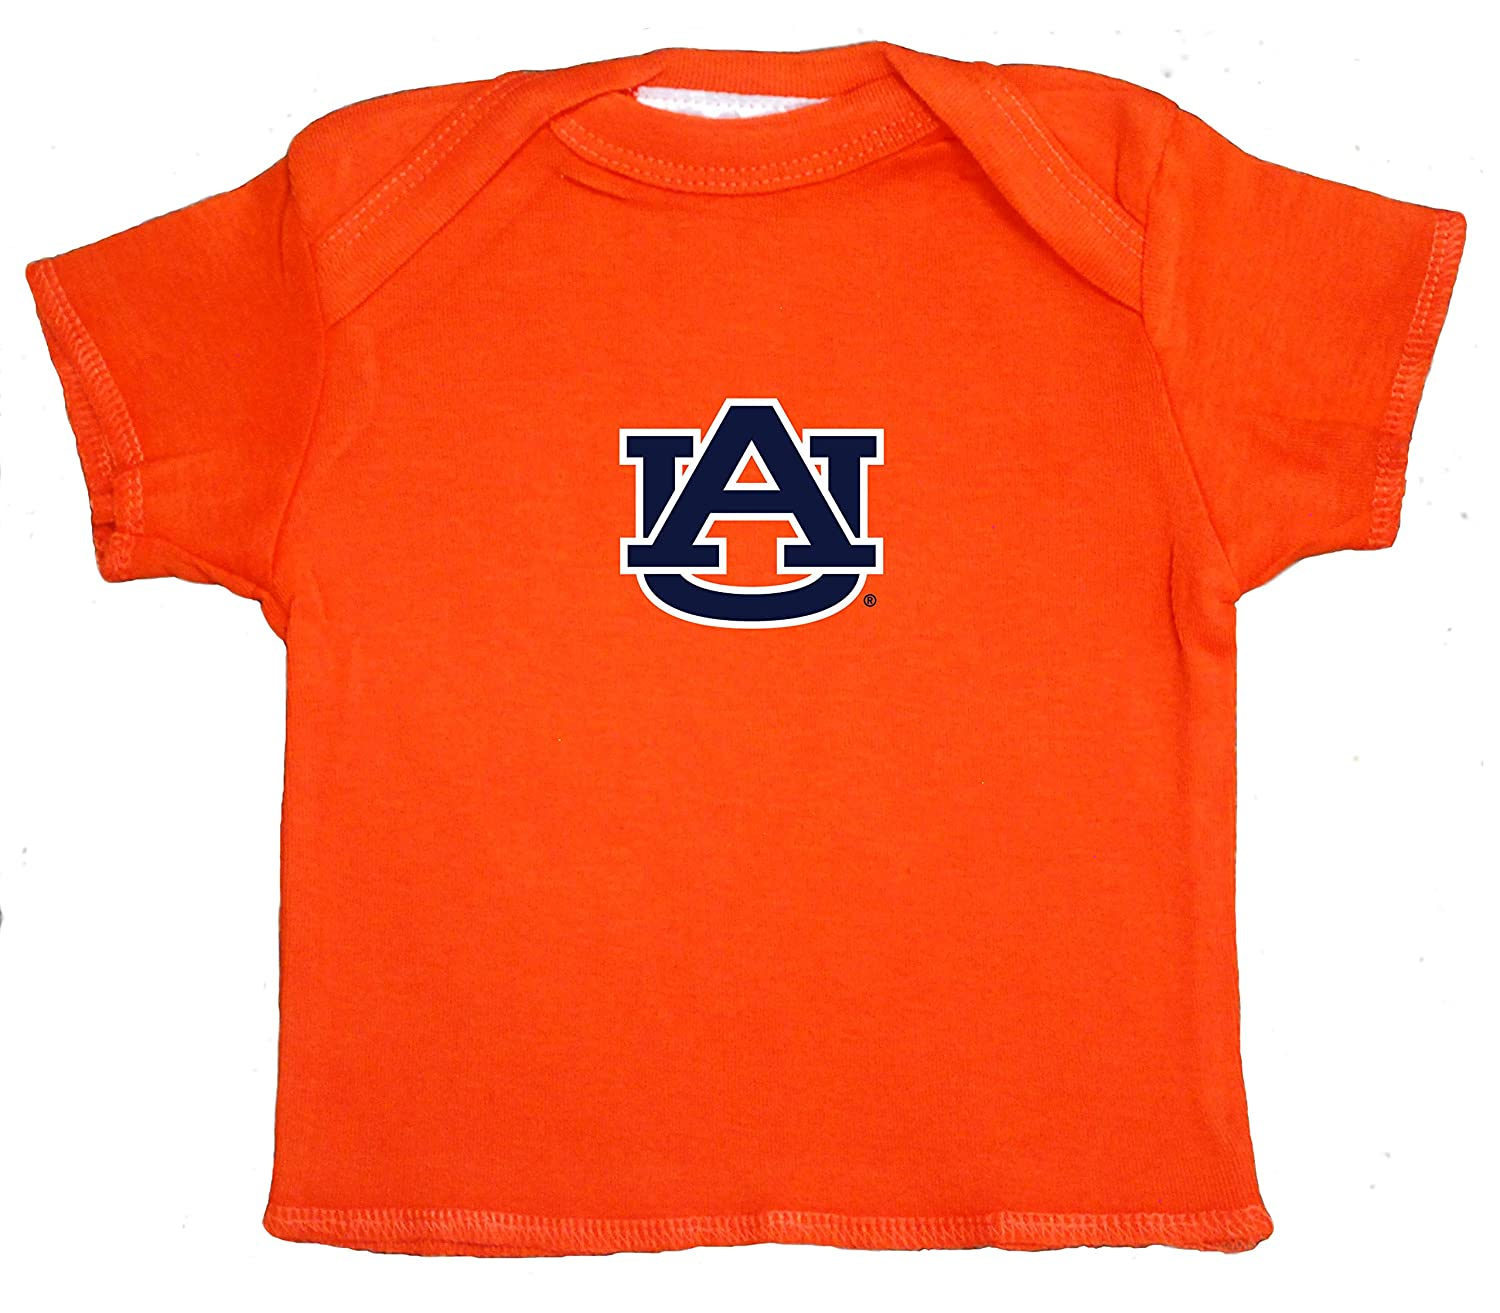 Auburn Tigers NCAA Baby Newborn Orange Lap Shoulder T-Shirt Tee 0-3 Months